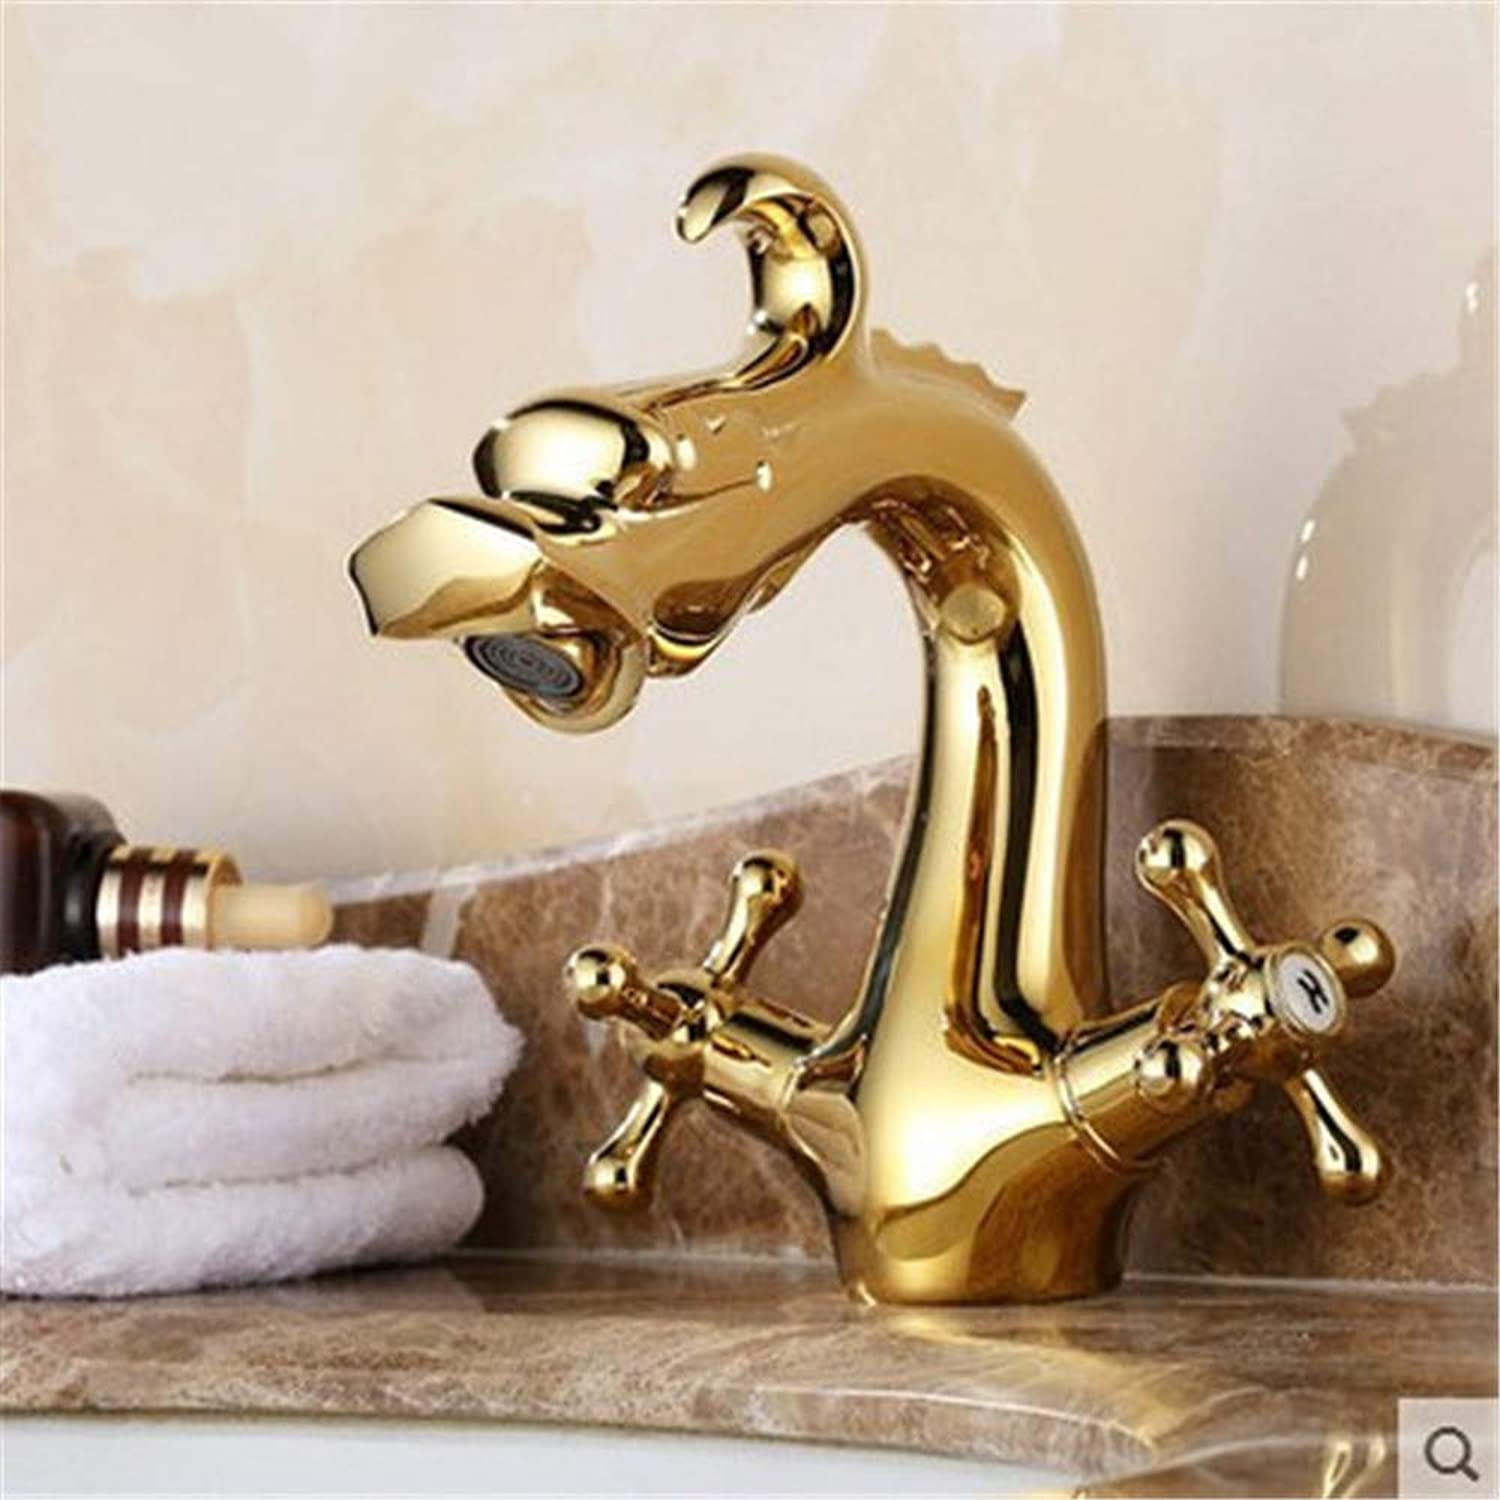 Decorry European High-Grade gold All-Copper Basin Faucet Washbasin Mixer Faucet Hot and Cold Taps Animal A